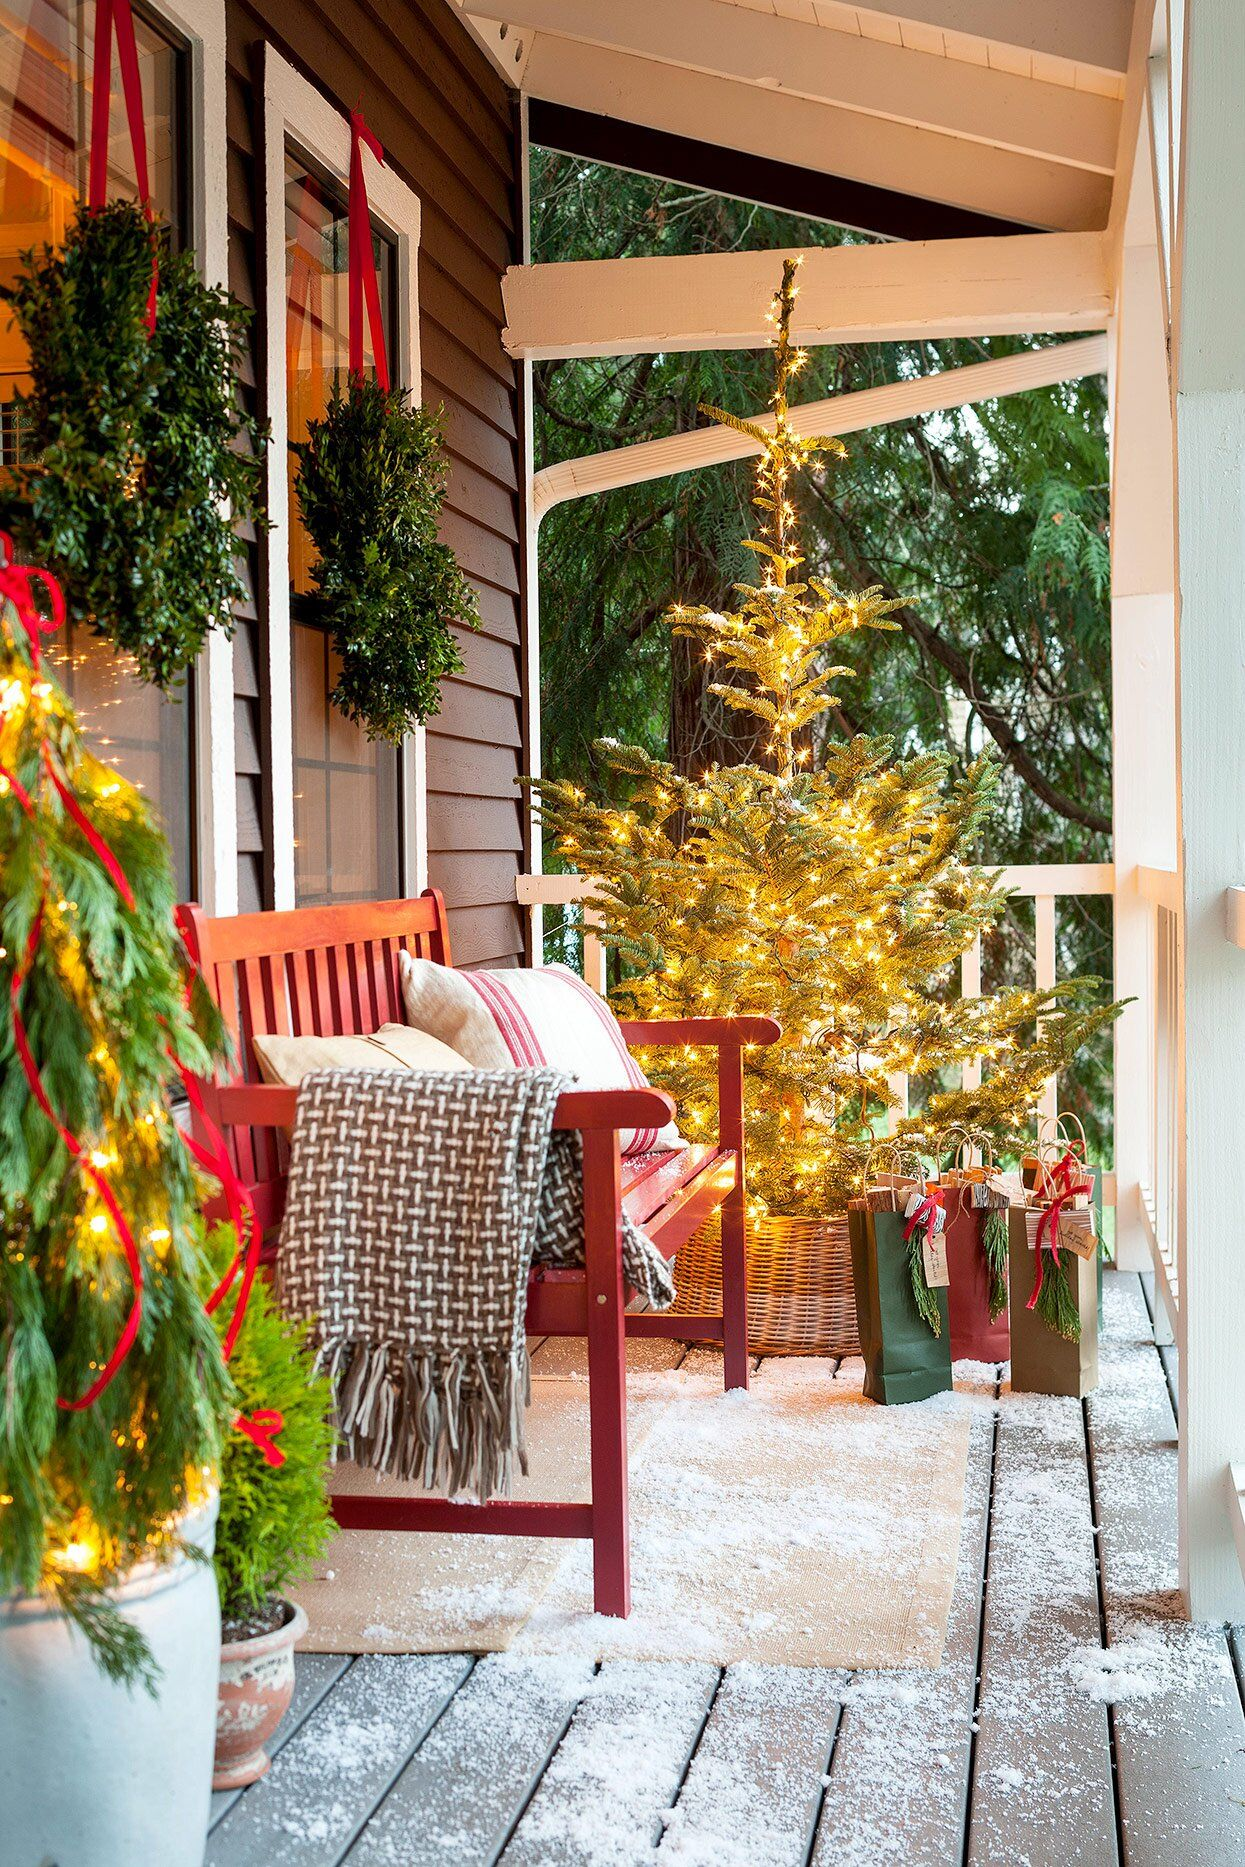 30 Ideas for the Best Outdoor Christmas Decorations on the Block -   18 christmas decor outdoor fence ideas